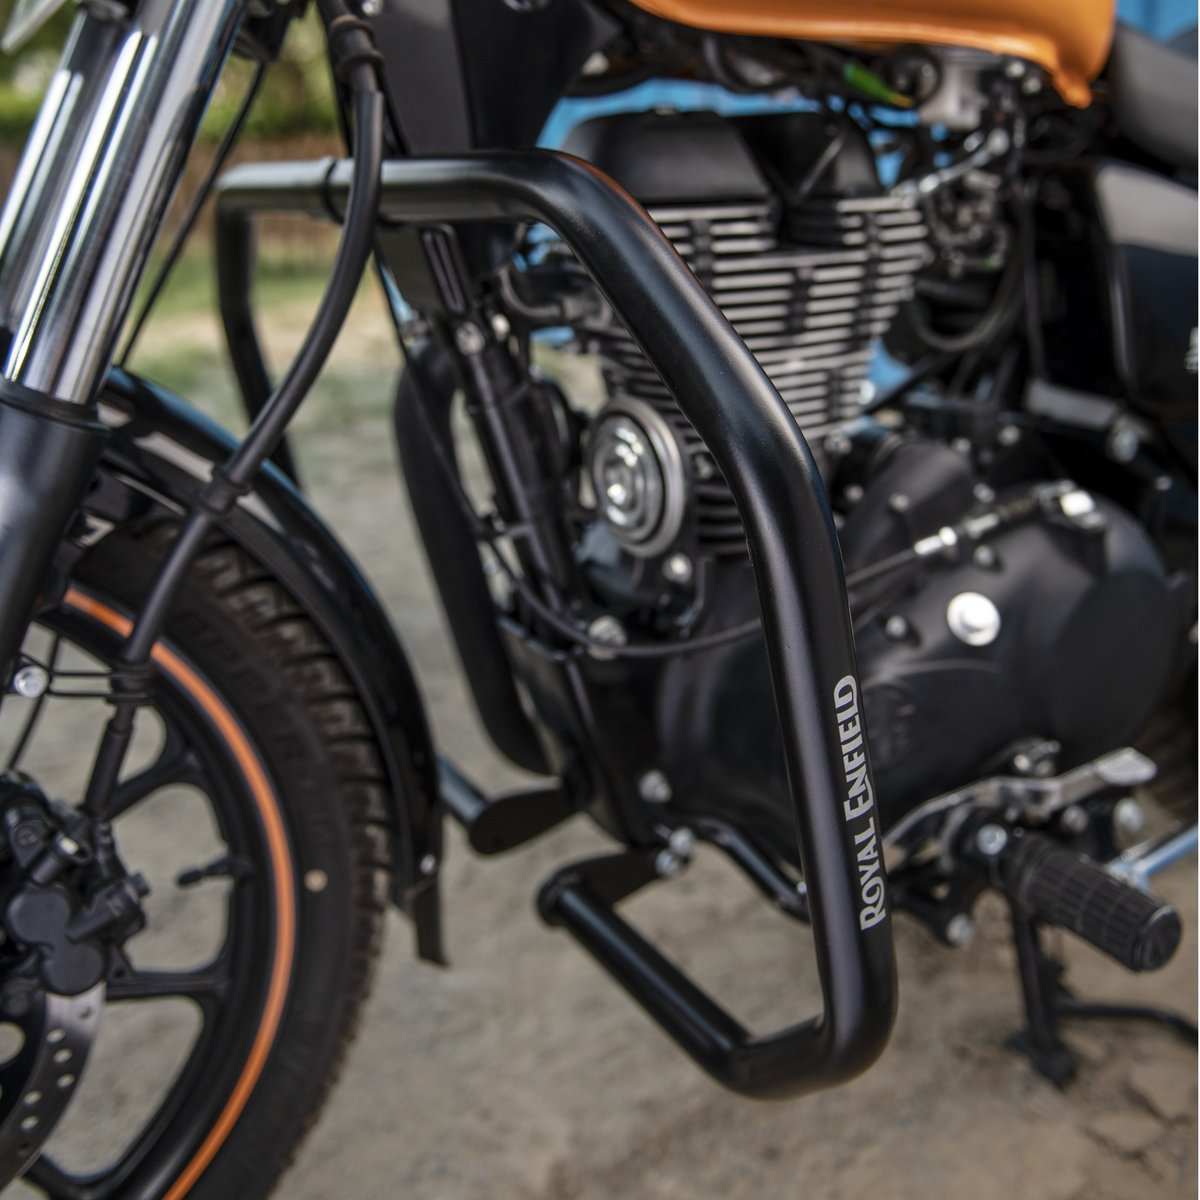 Royal Enfield On Twitter Get Security And Style With Royalenfield